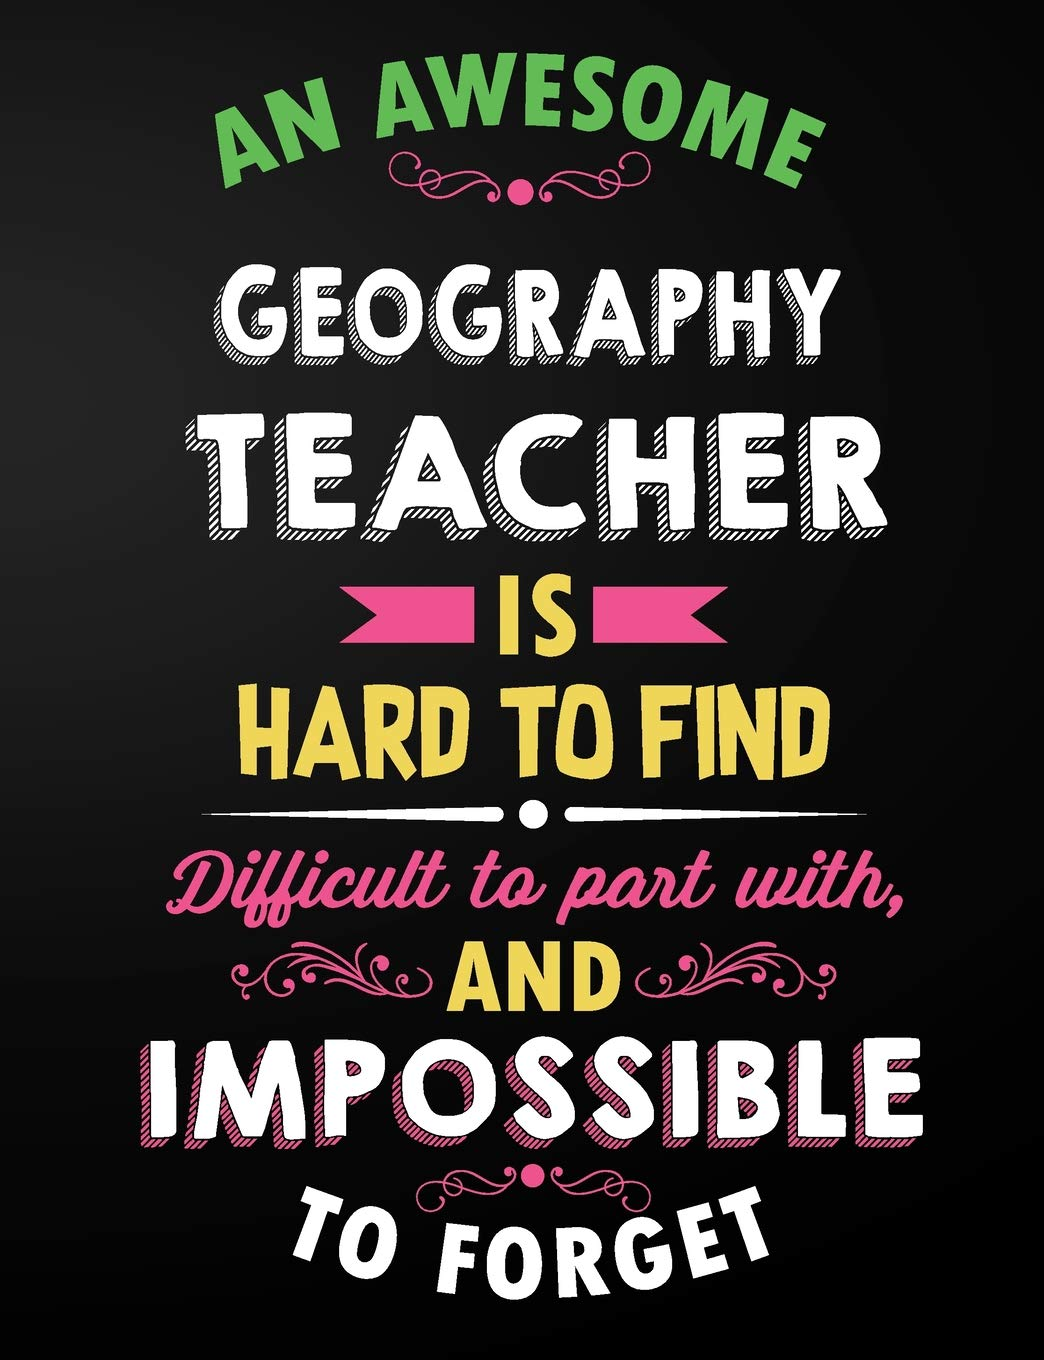 Geography Teacher An Awesome Geography Teacher Is Hard To Find Inspirational Quote Notebook Journal And Planner For Teacher Gift Cute Teacher Gift 7 44 X 9 69 110 Wide Rule Pages Notebooks C R 9781725881051 Amazon Com Books